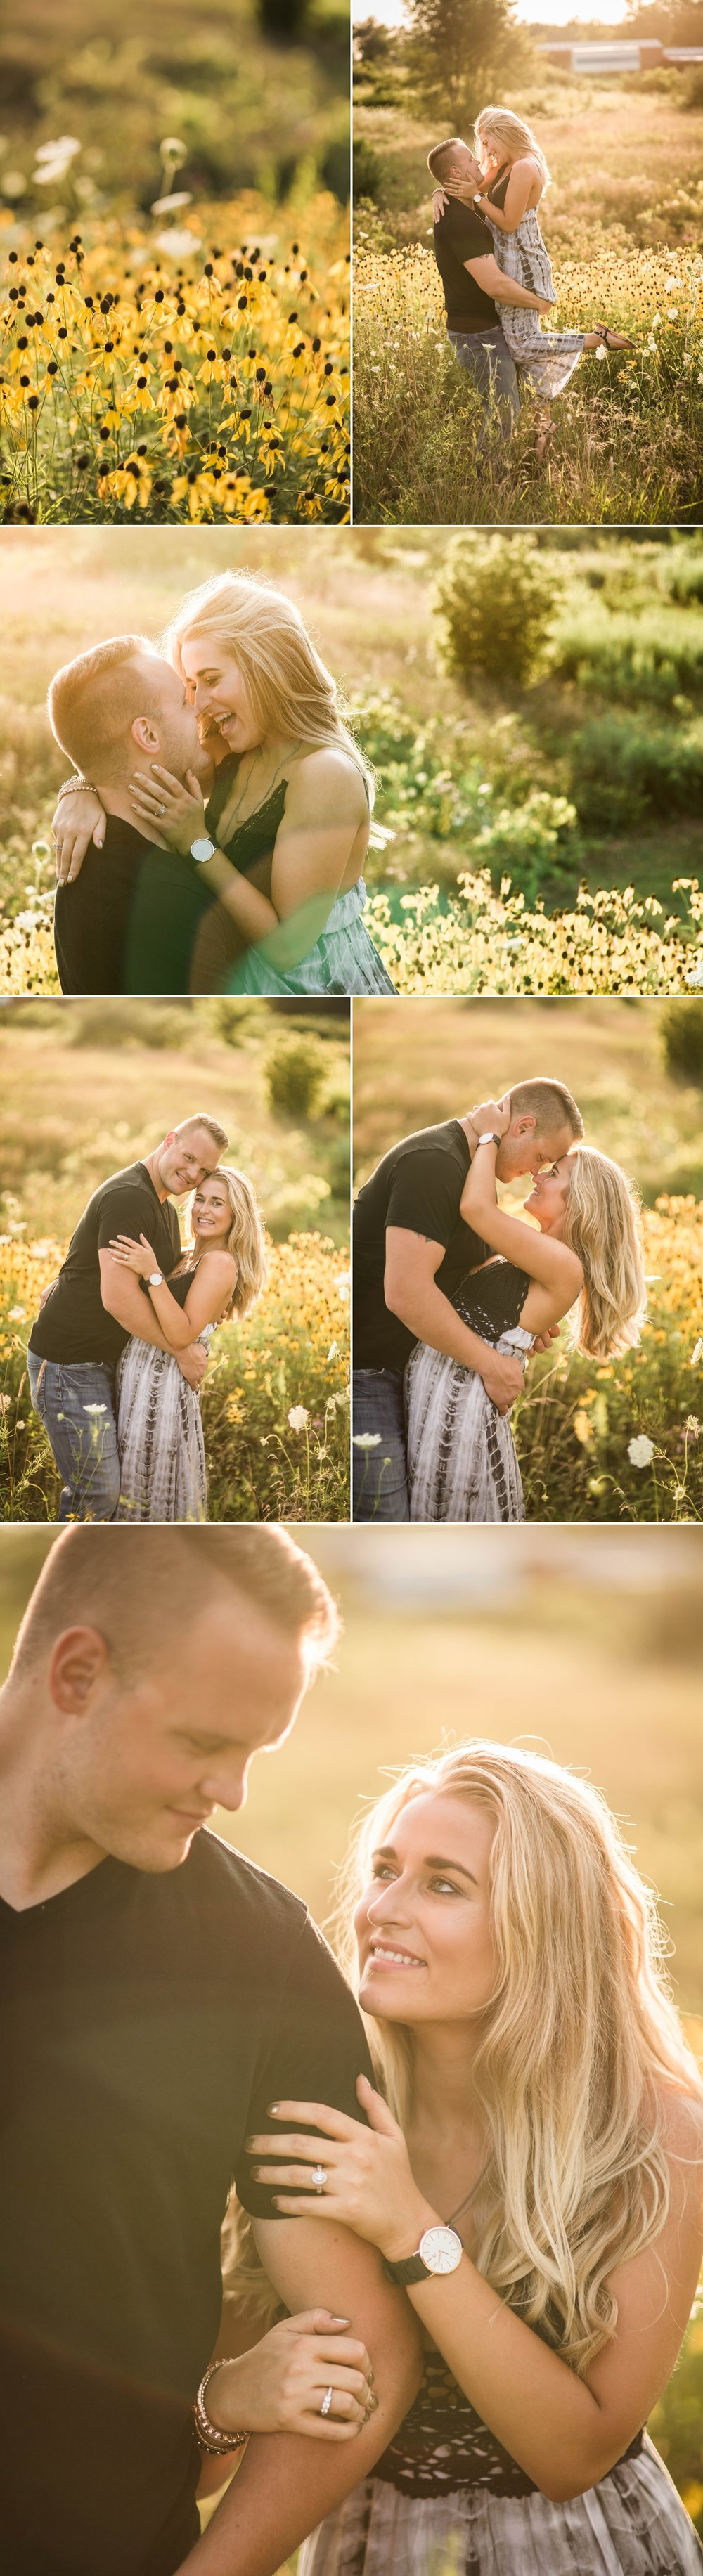 engagement session-field-summer-love-sunset-kiss-park-country-fort wayne-indiana